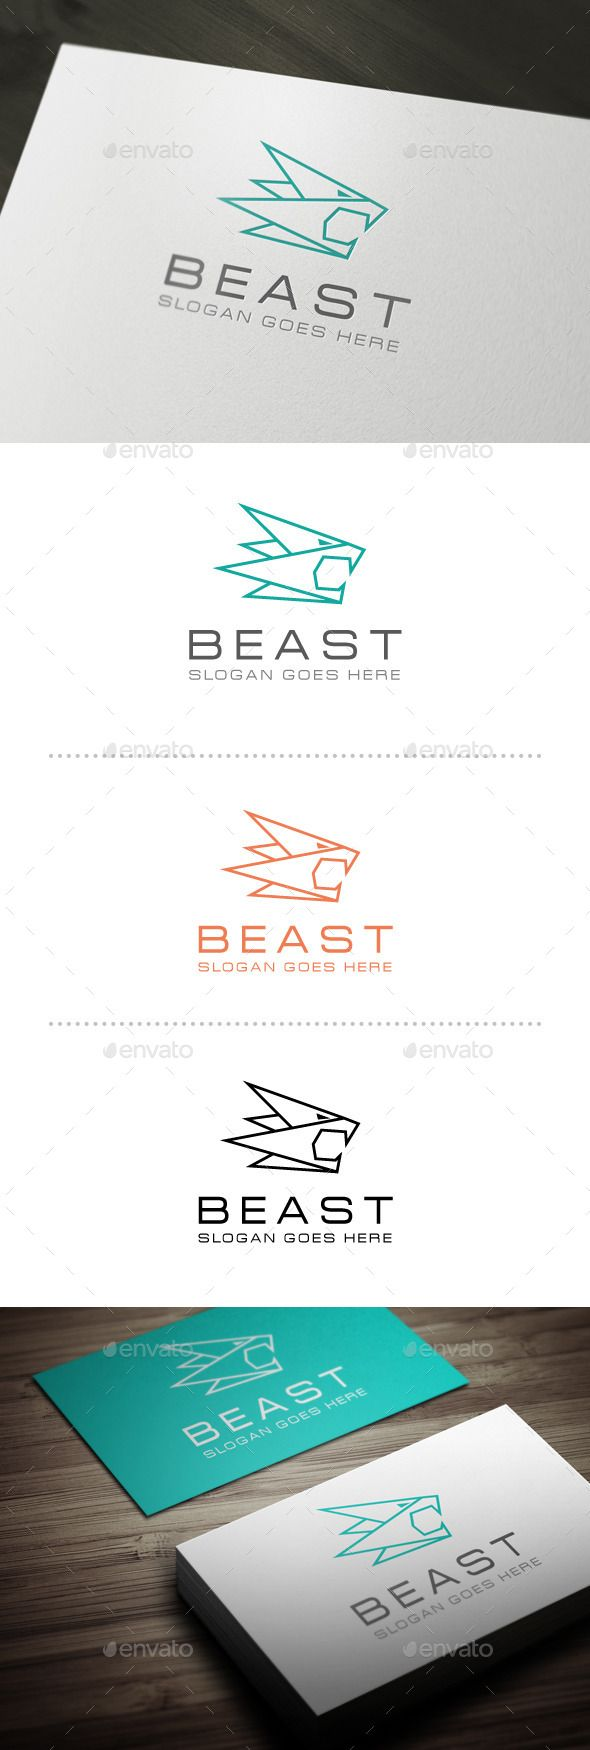 Beast  Logo Design Template Vector #logotype Download it here: http://graphicriver.net/item/beast-logo-template/10664062?s_rank=1065?ref=nexion